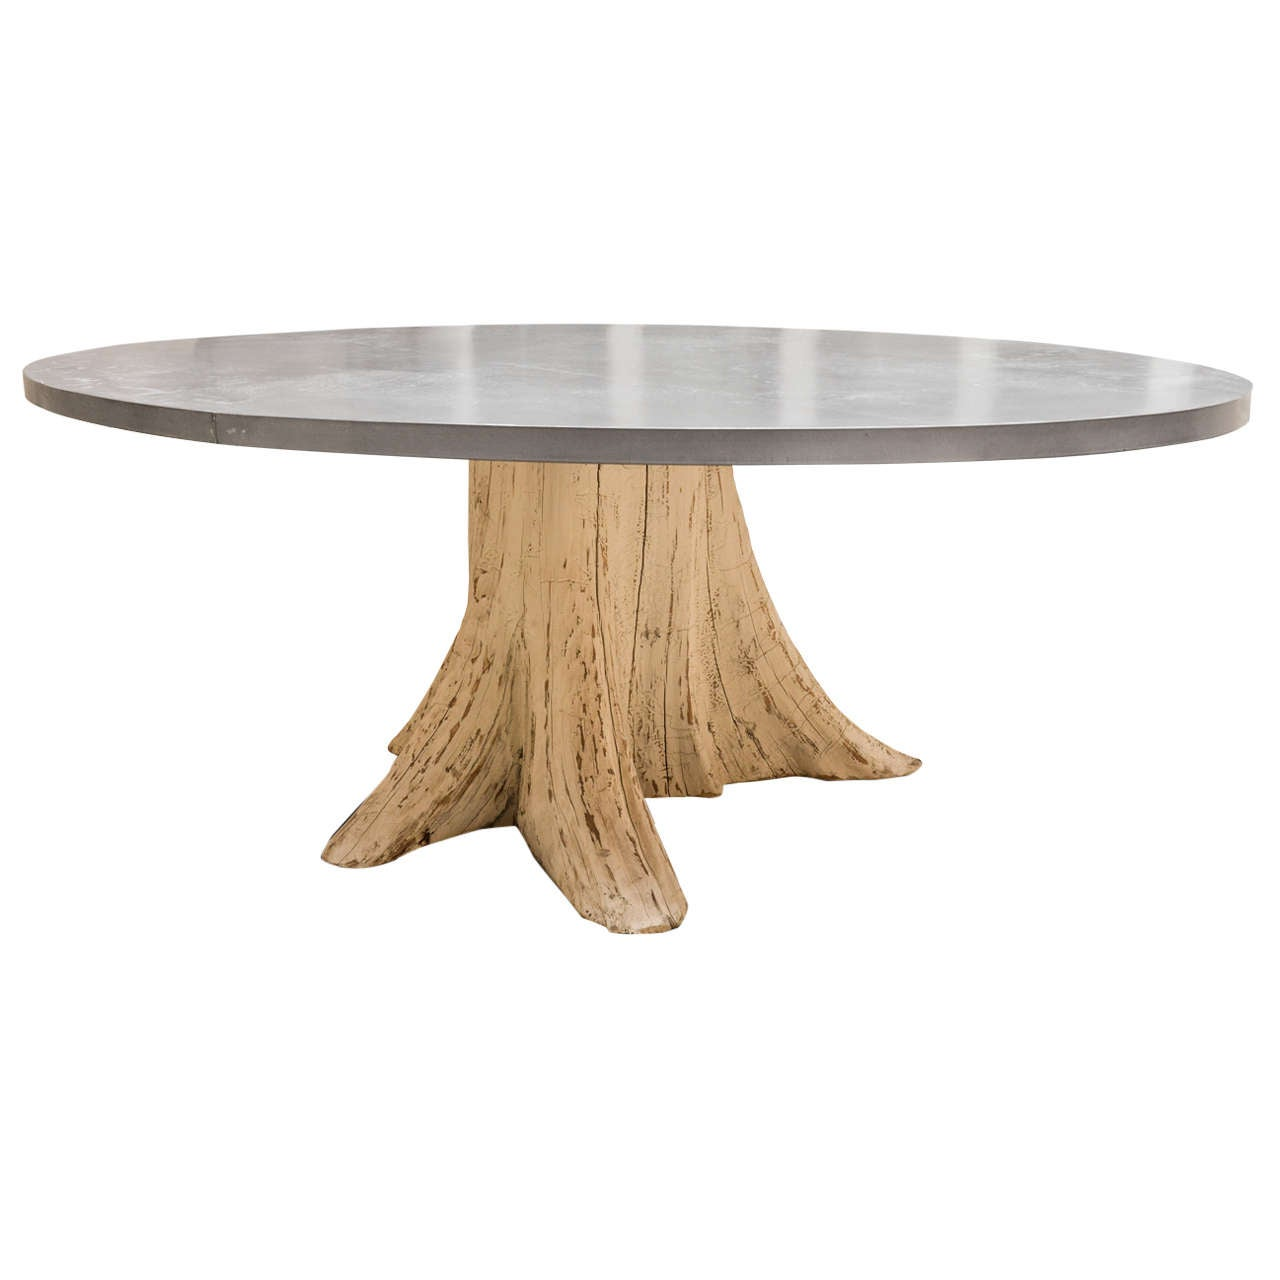 Natural Tree Trunk Dining Table With Zinc Top